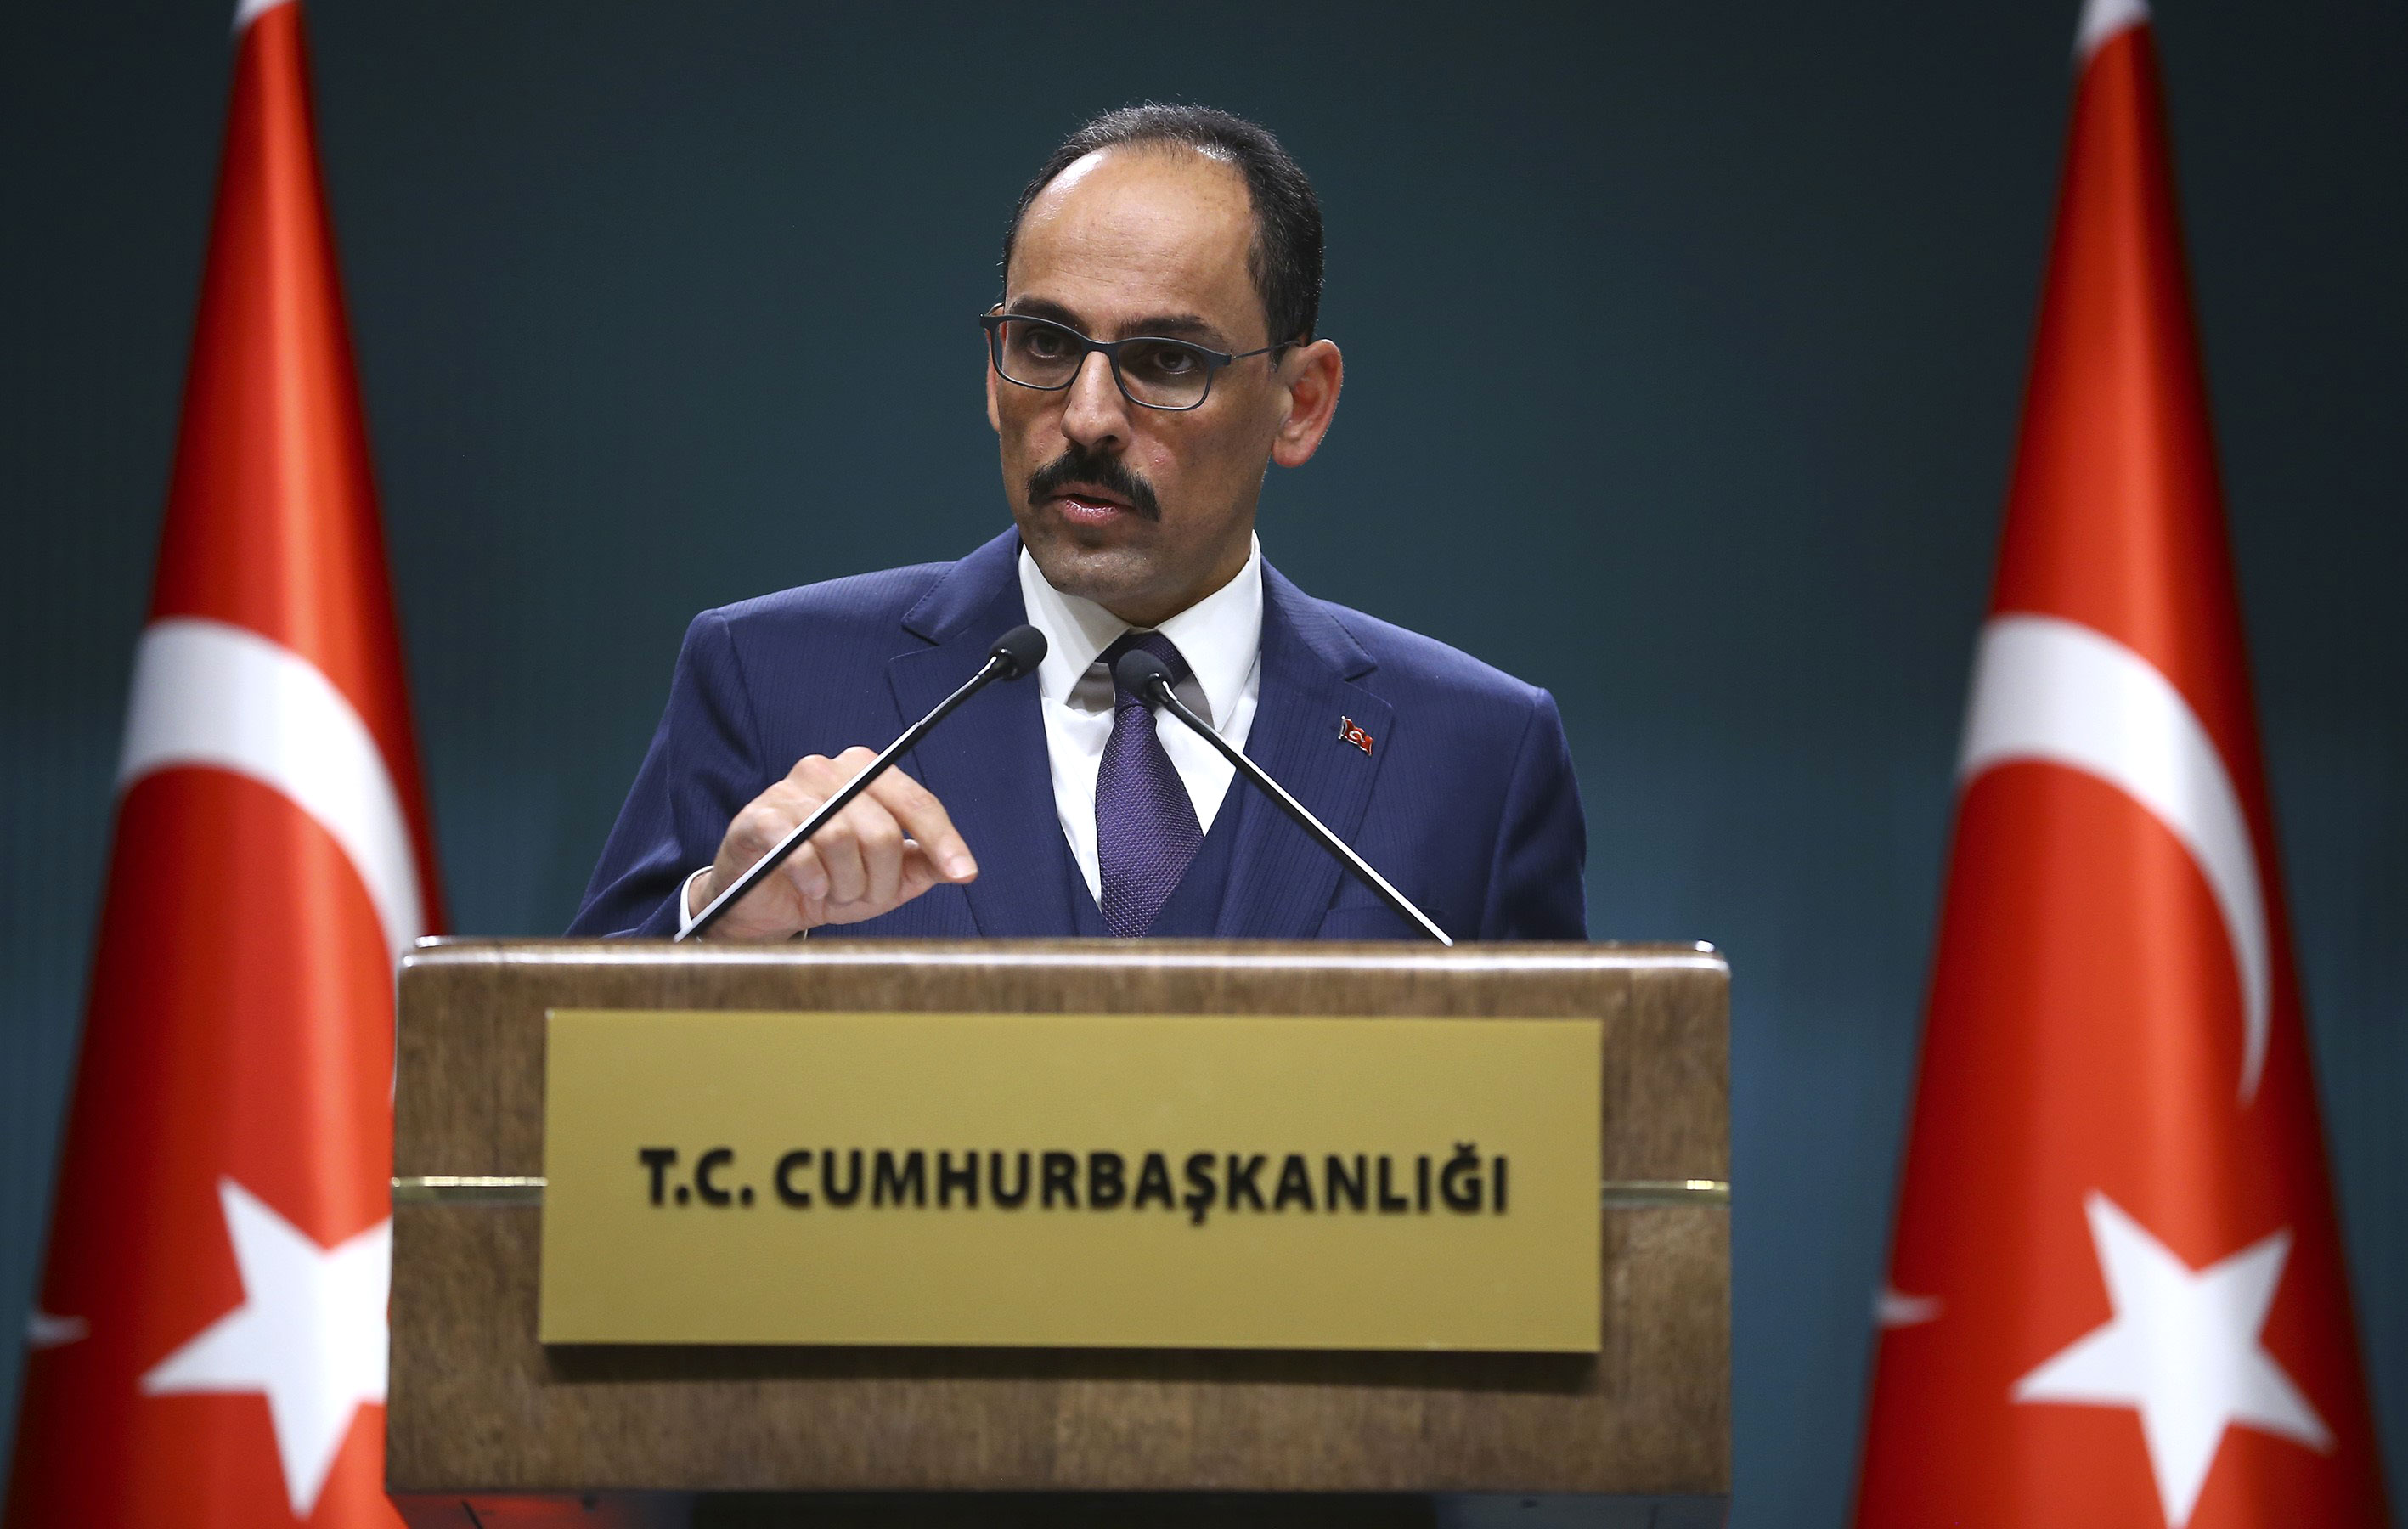 Turkish presidential spokesperson Ibrahim Kalin holds a press conference on December 11, 2019.